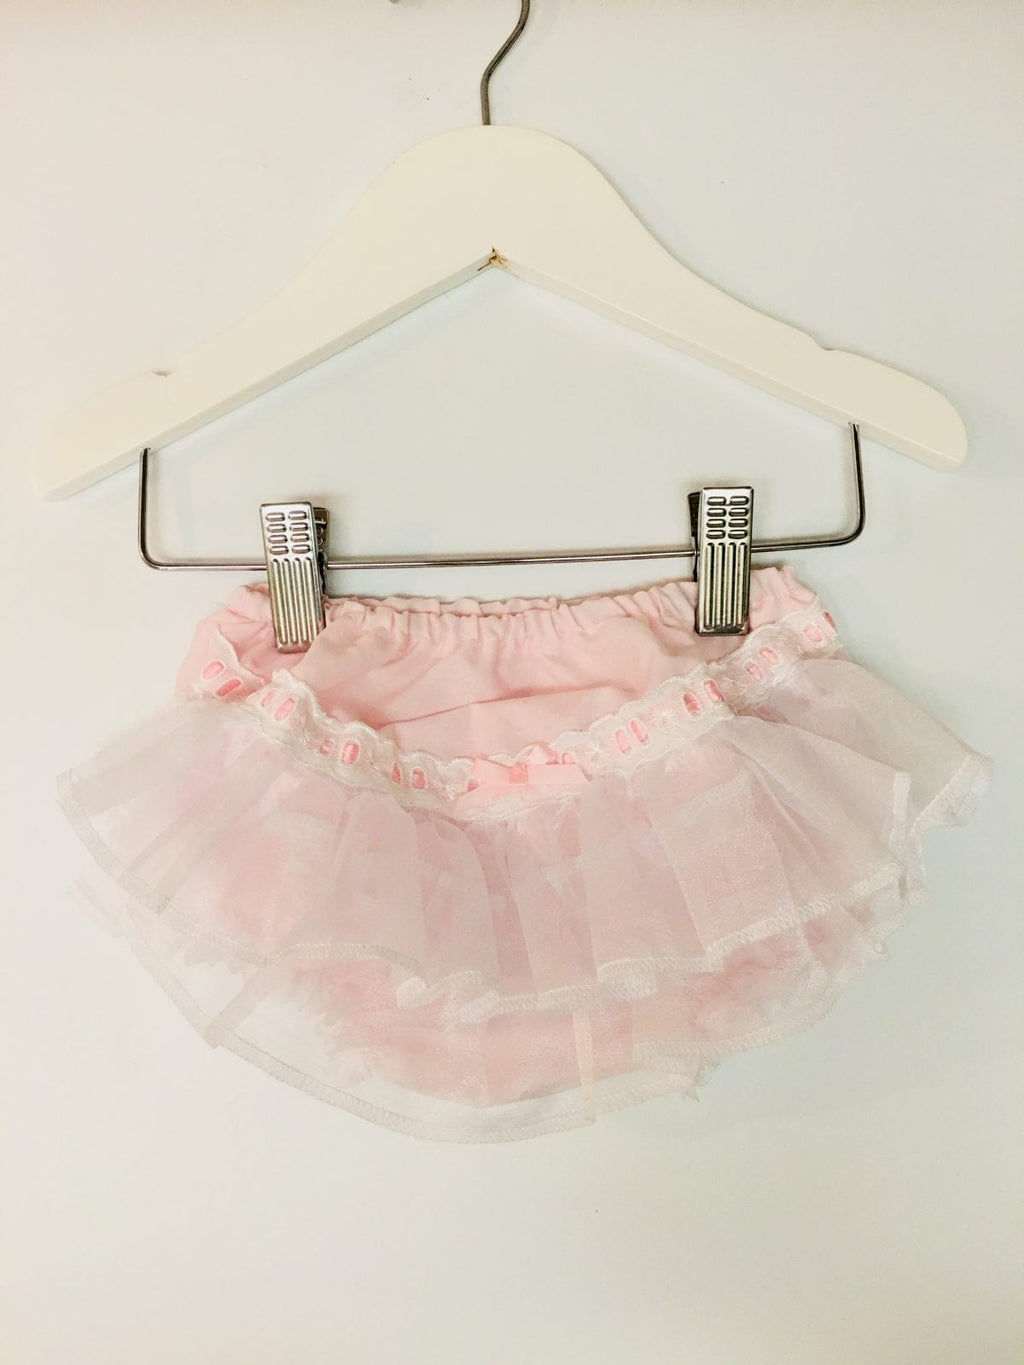 Pex Pink and white frilly knickers